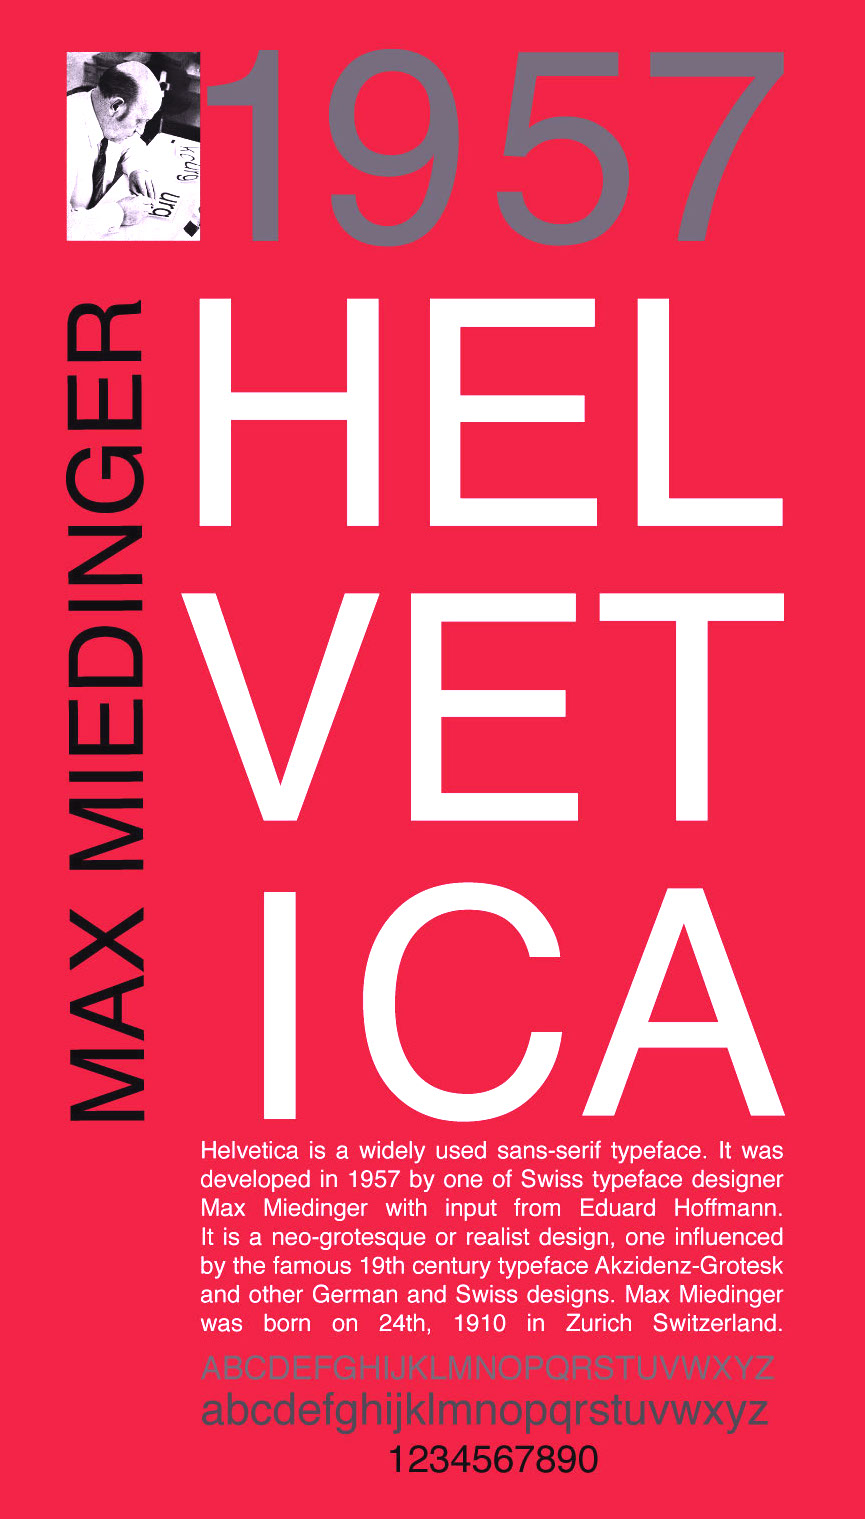 max miedinger Helvetica or neue haas grotesk is a widely used sans-serif typeface developed in 1957 by swiss typeface designer max miedinger with input from eduard hoffmann helvetica is a neo-grotesque.